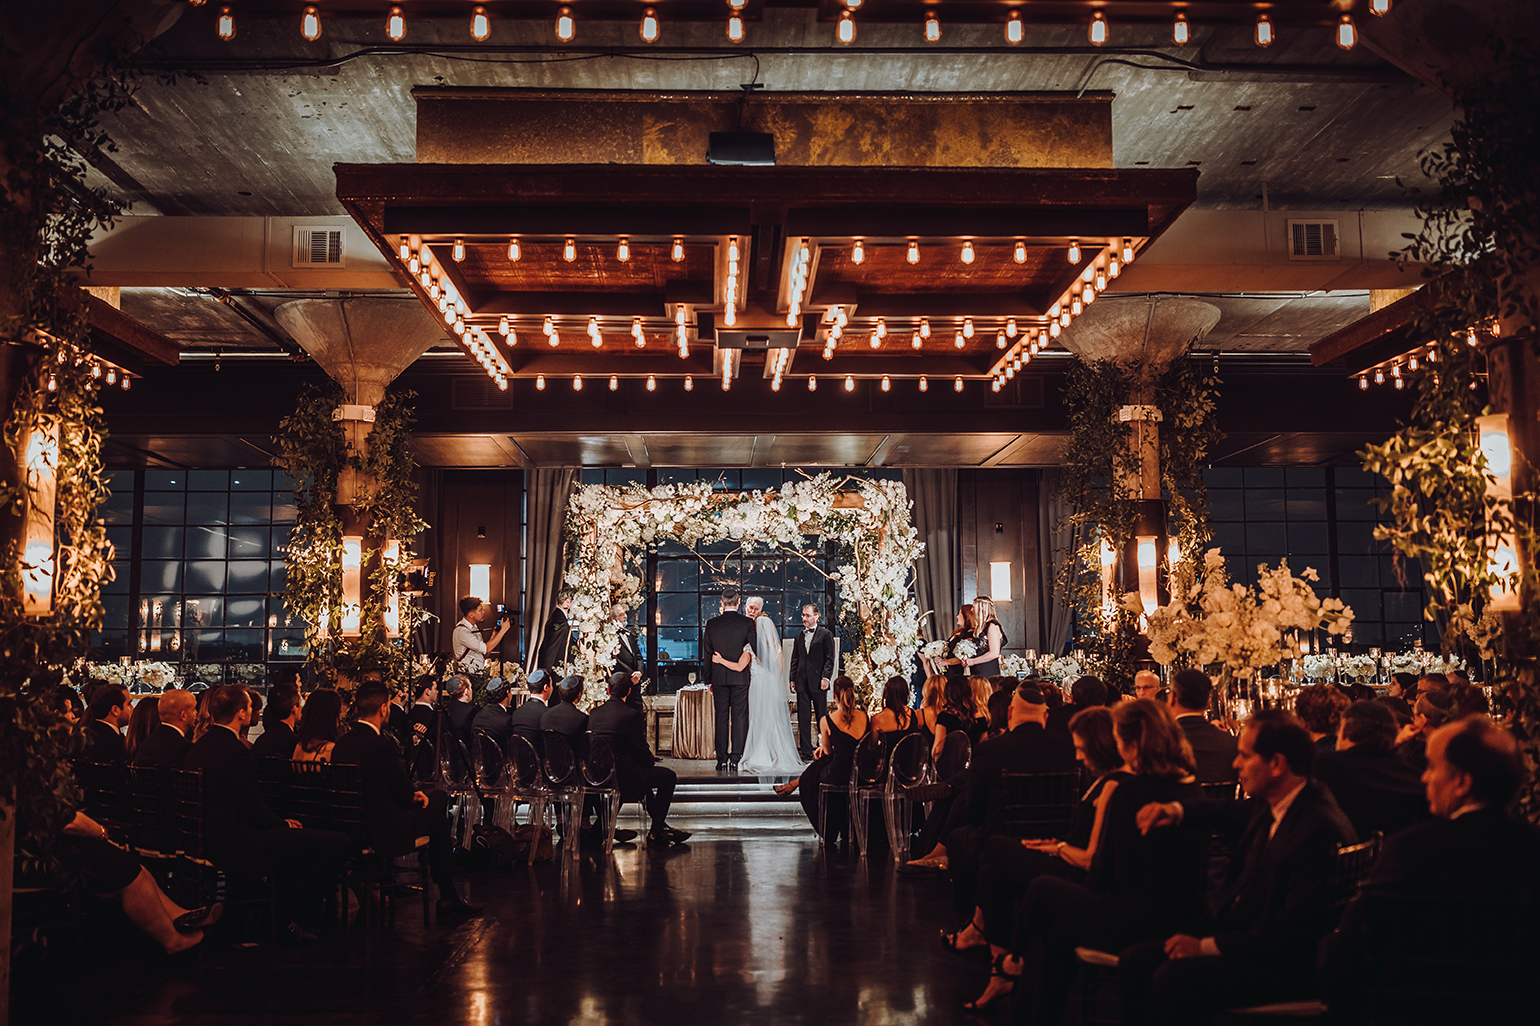 Houston Wedding, The Astorian, Jewish Wedding, Wedding Ceremony, Floral Canopy